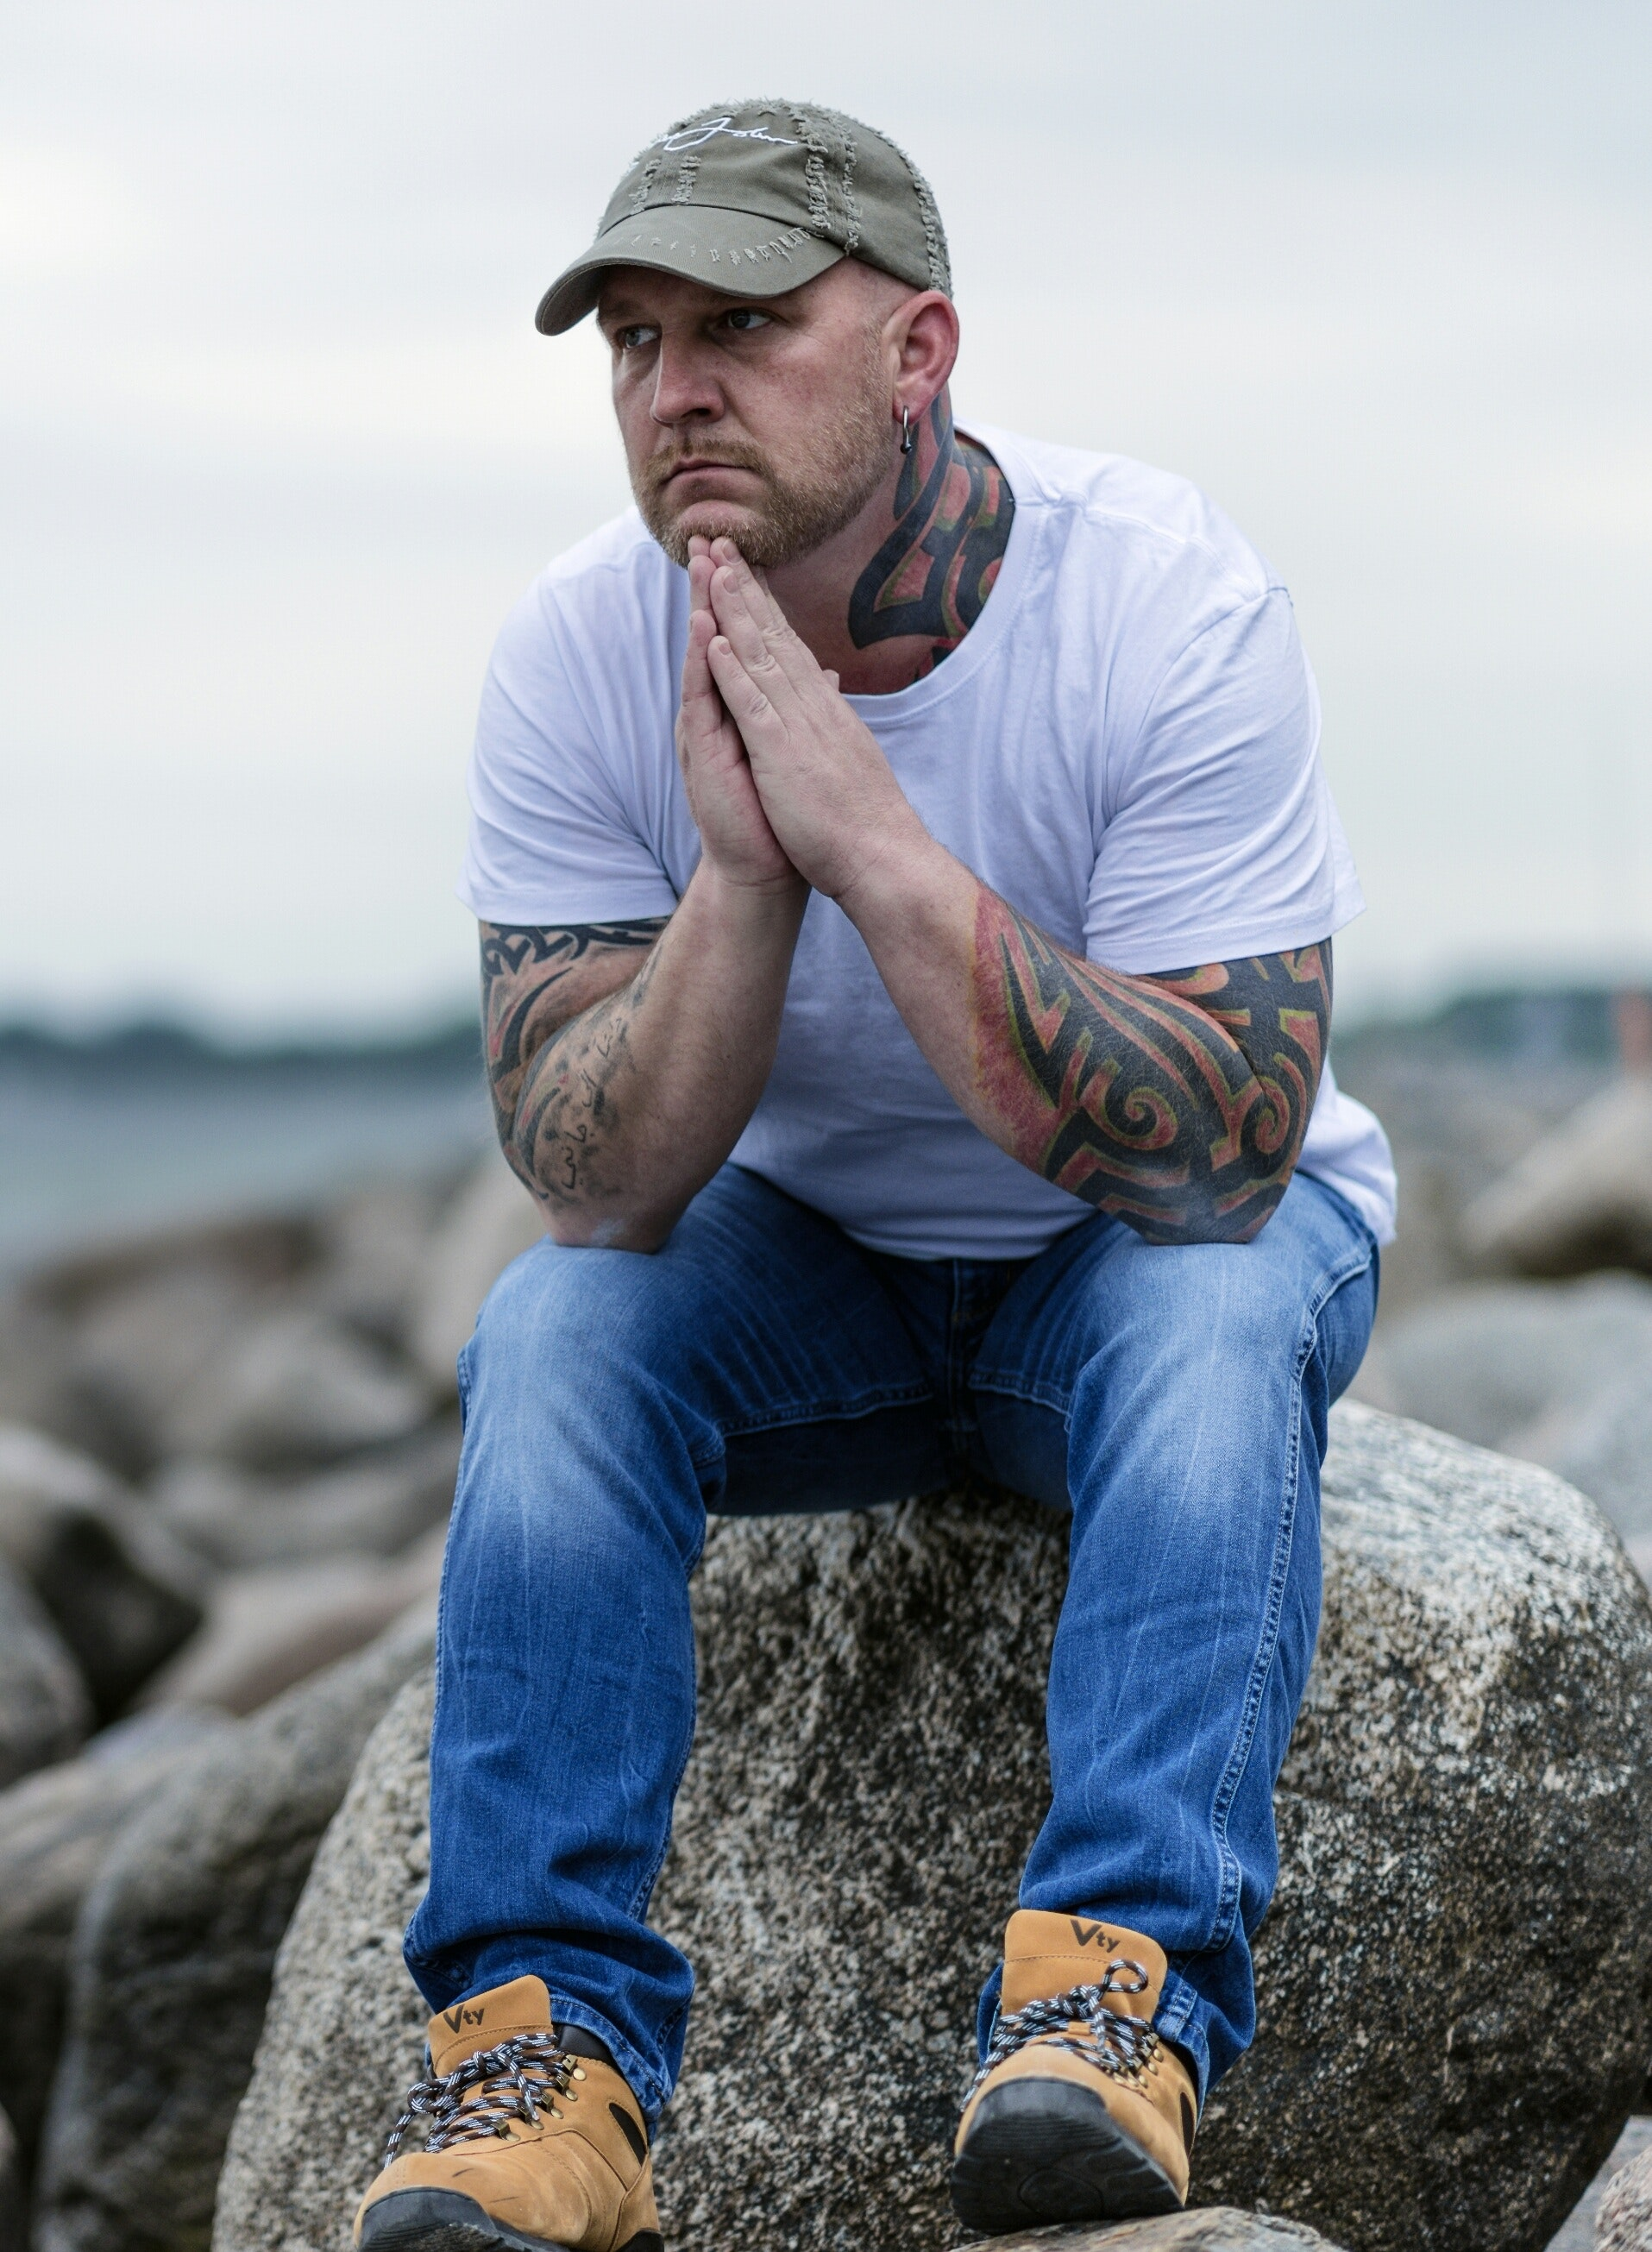 man with tattoos sitting on large rock thinking